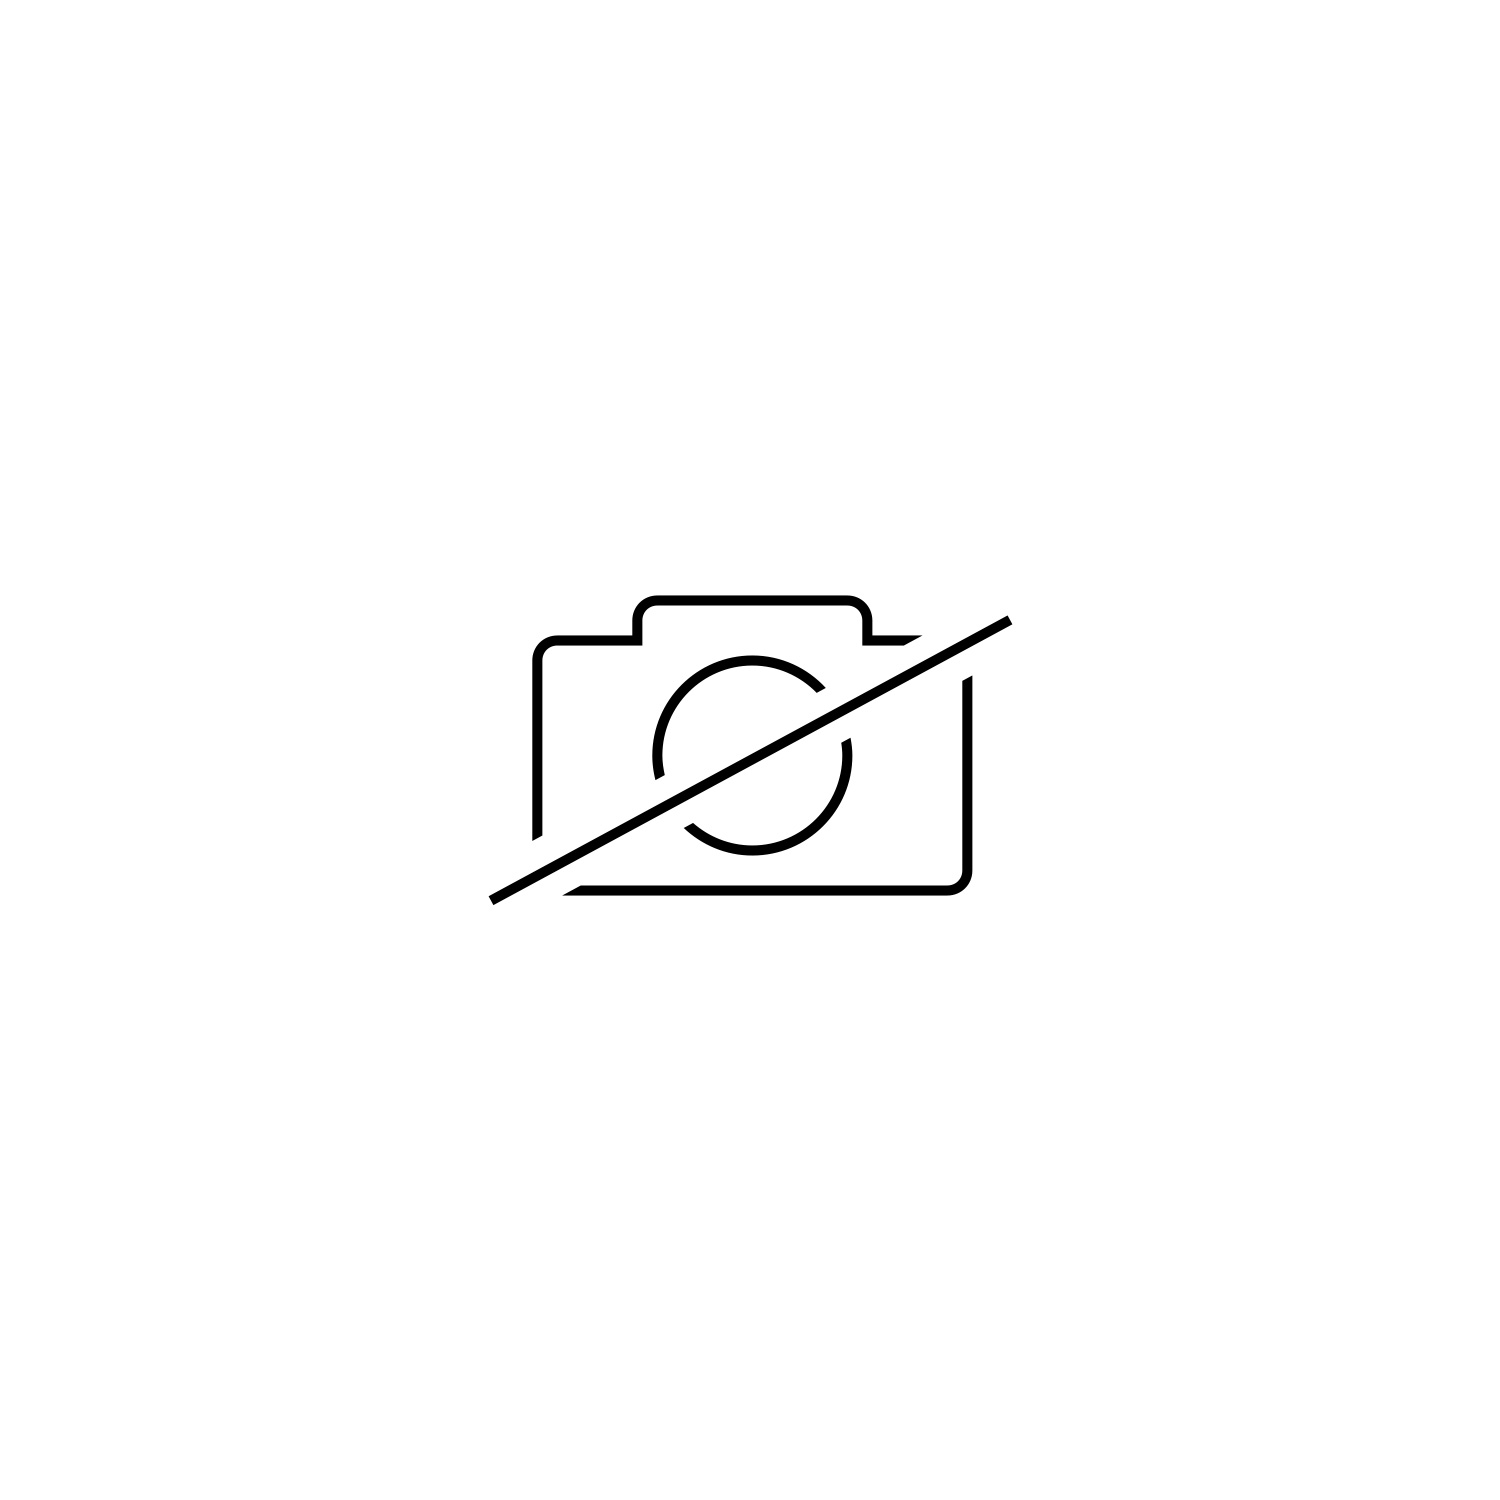 Audi Poloshirt, Mens, Dark grey, M